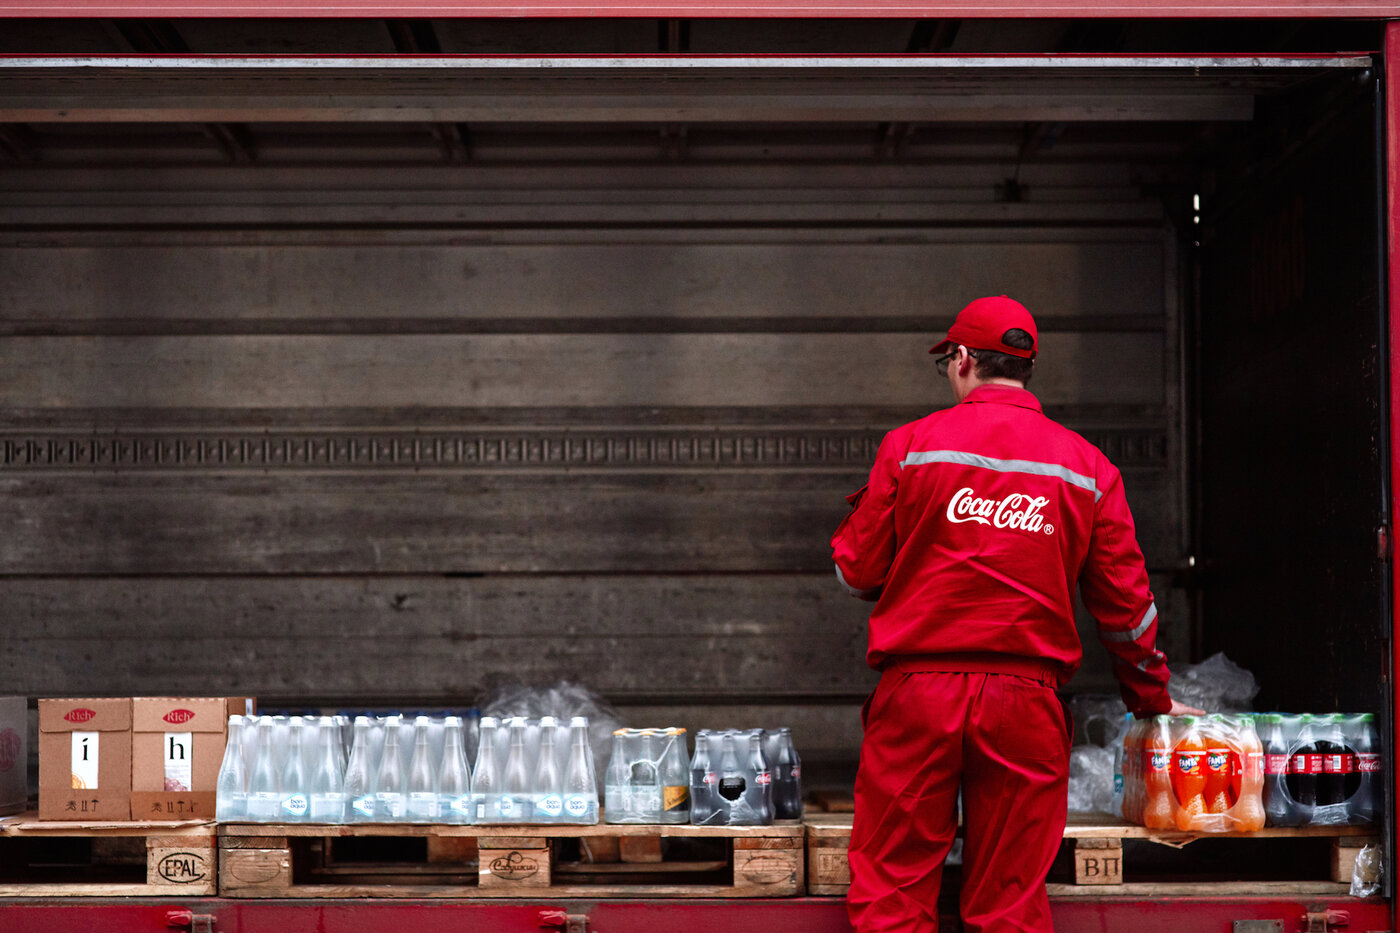 Coca-cola supply chain